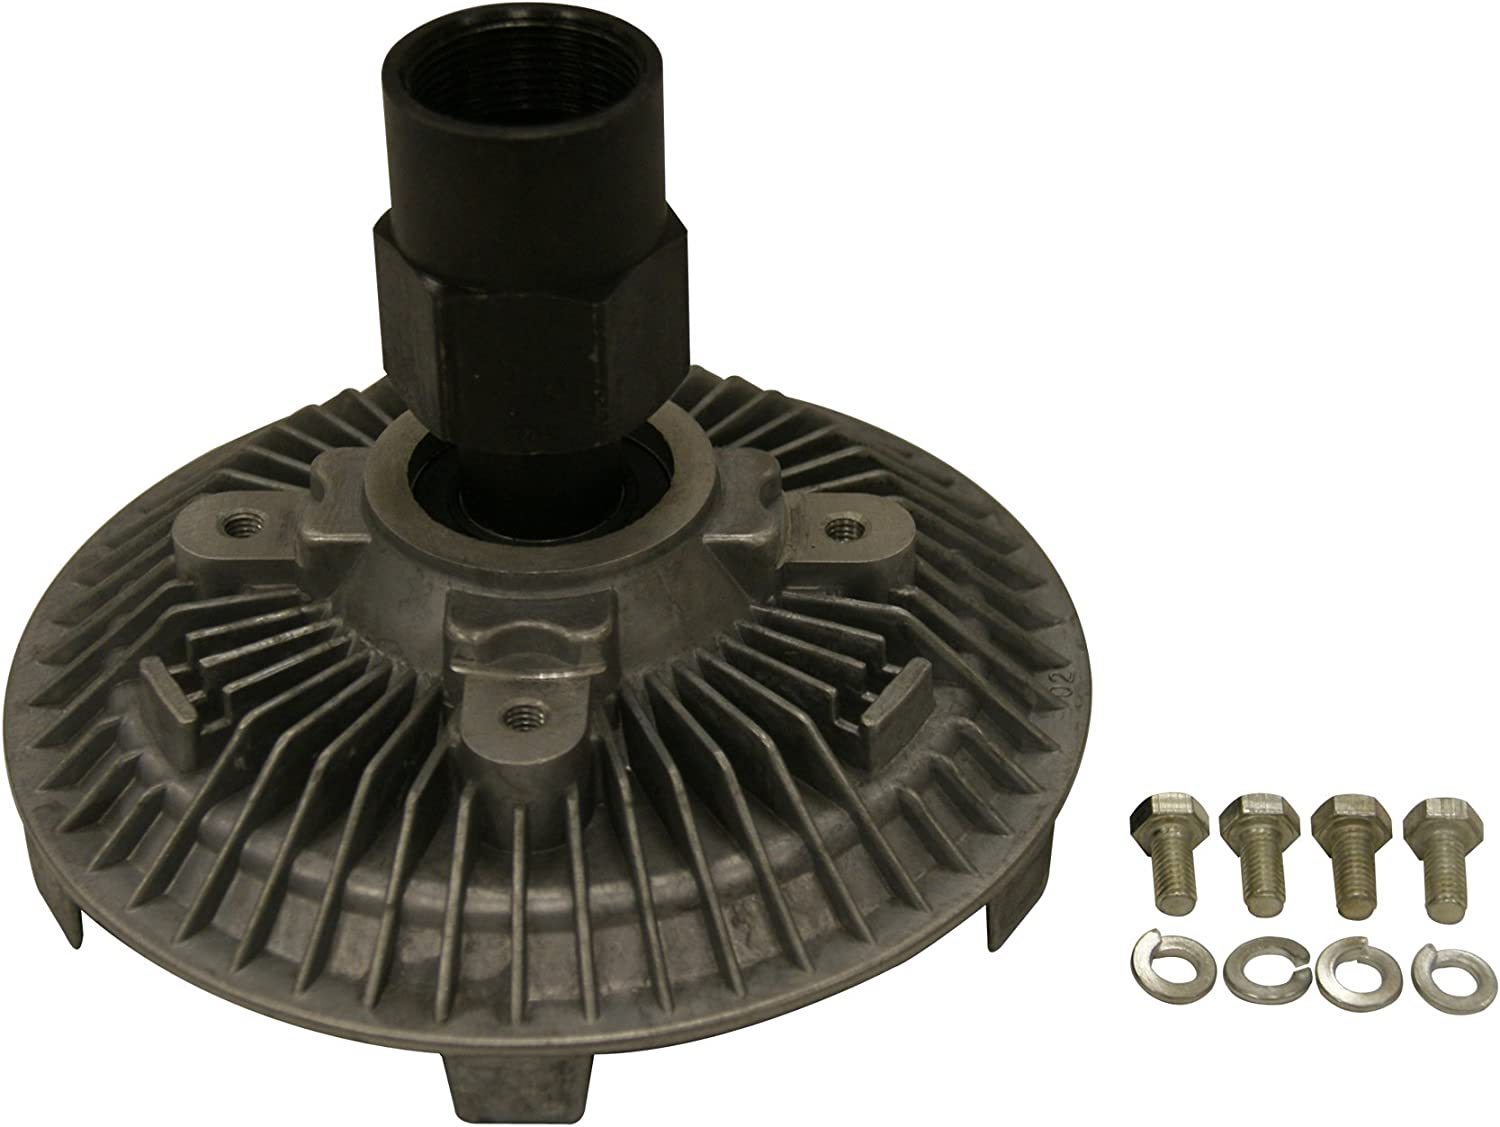 2779 Cooling Fan Clutch for For FORD 1995-2008 RANGER;For MAZDA 1994-2008 B3000 Radiator Engine Fan Clutch 4832